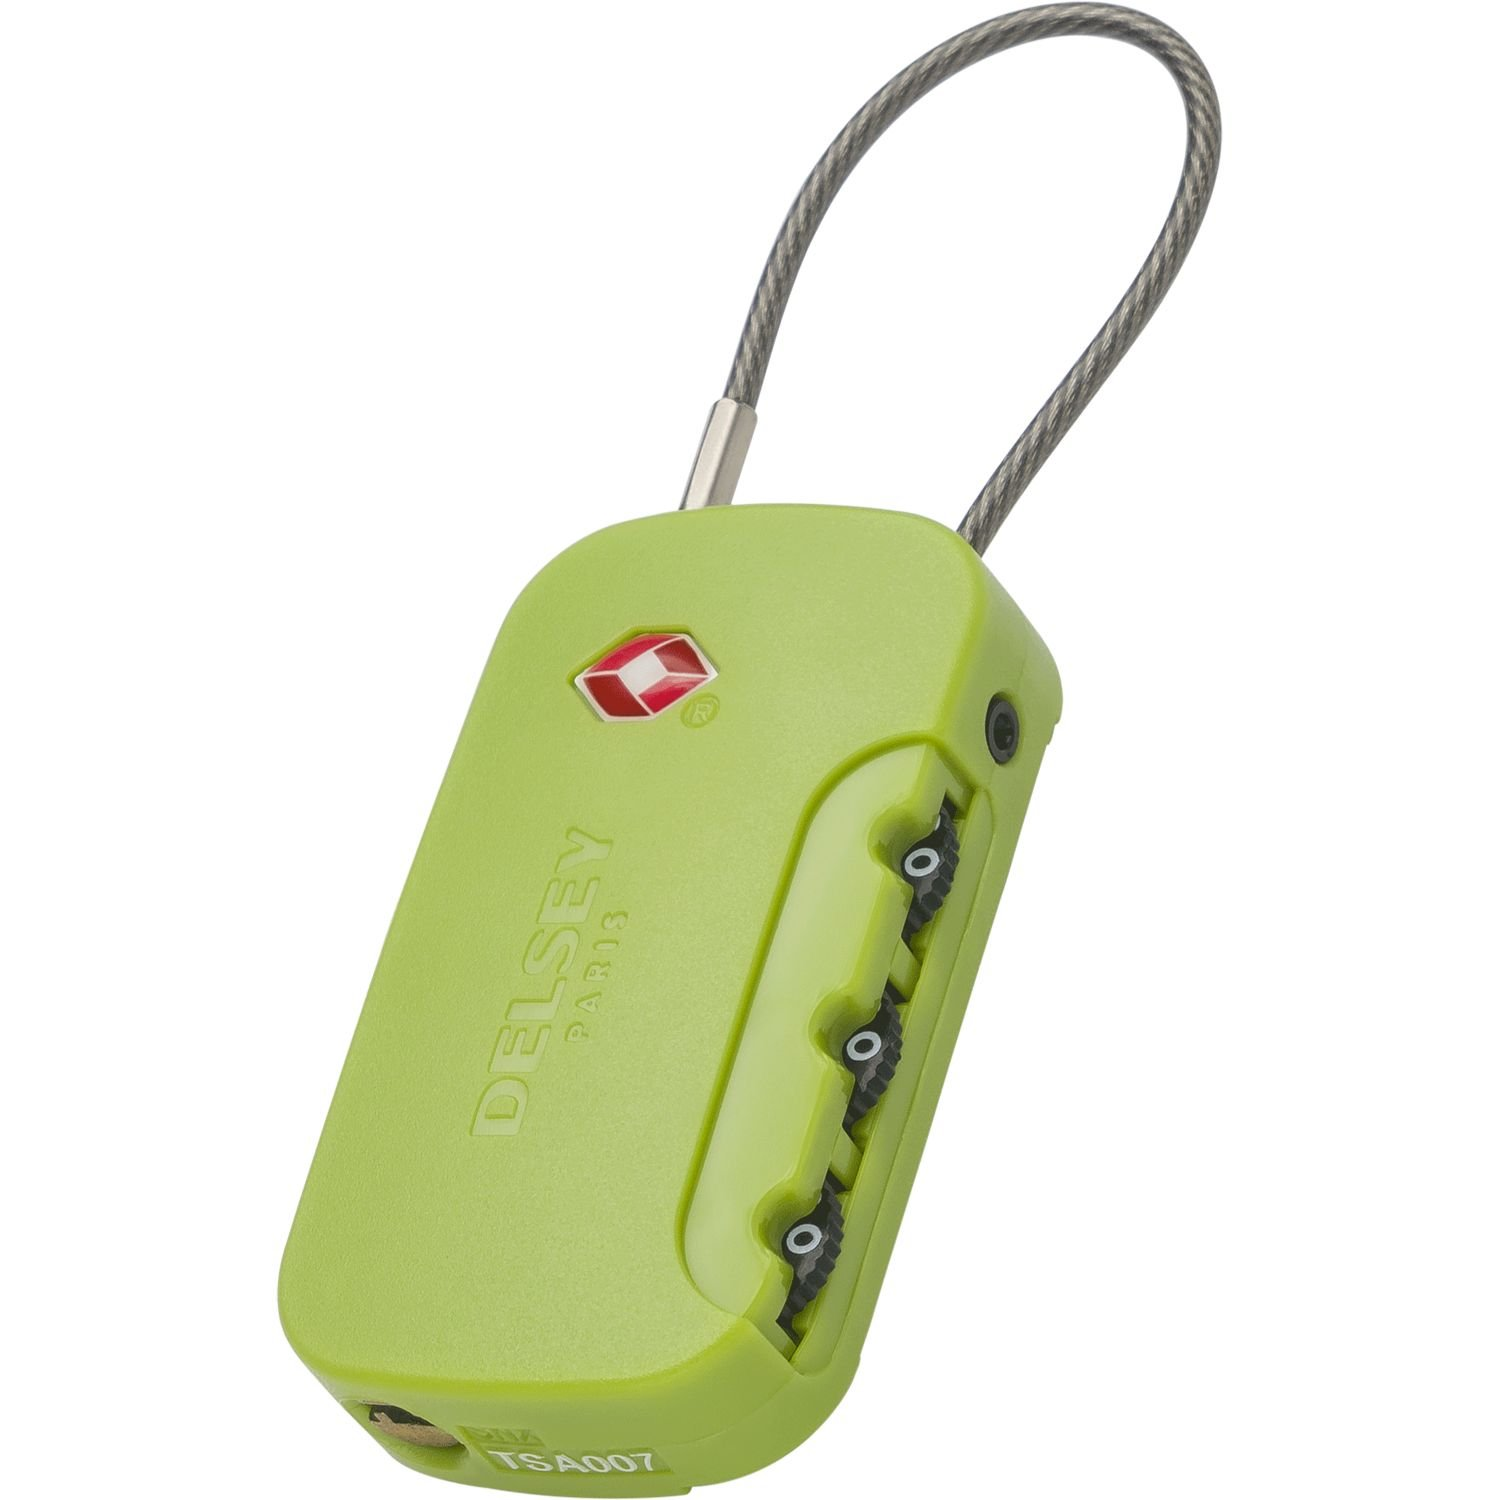 Delsey Luggage Lock red Red - 00394022004